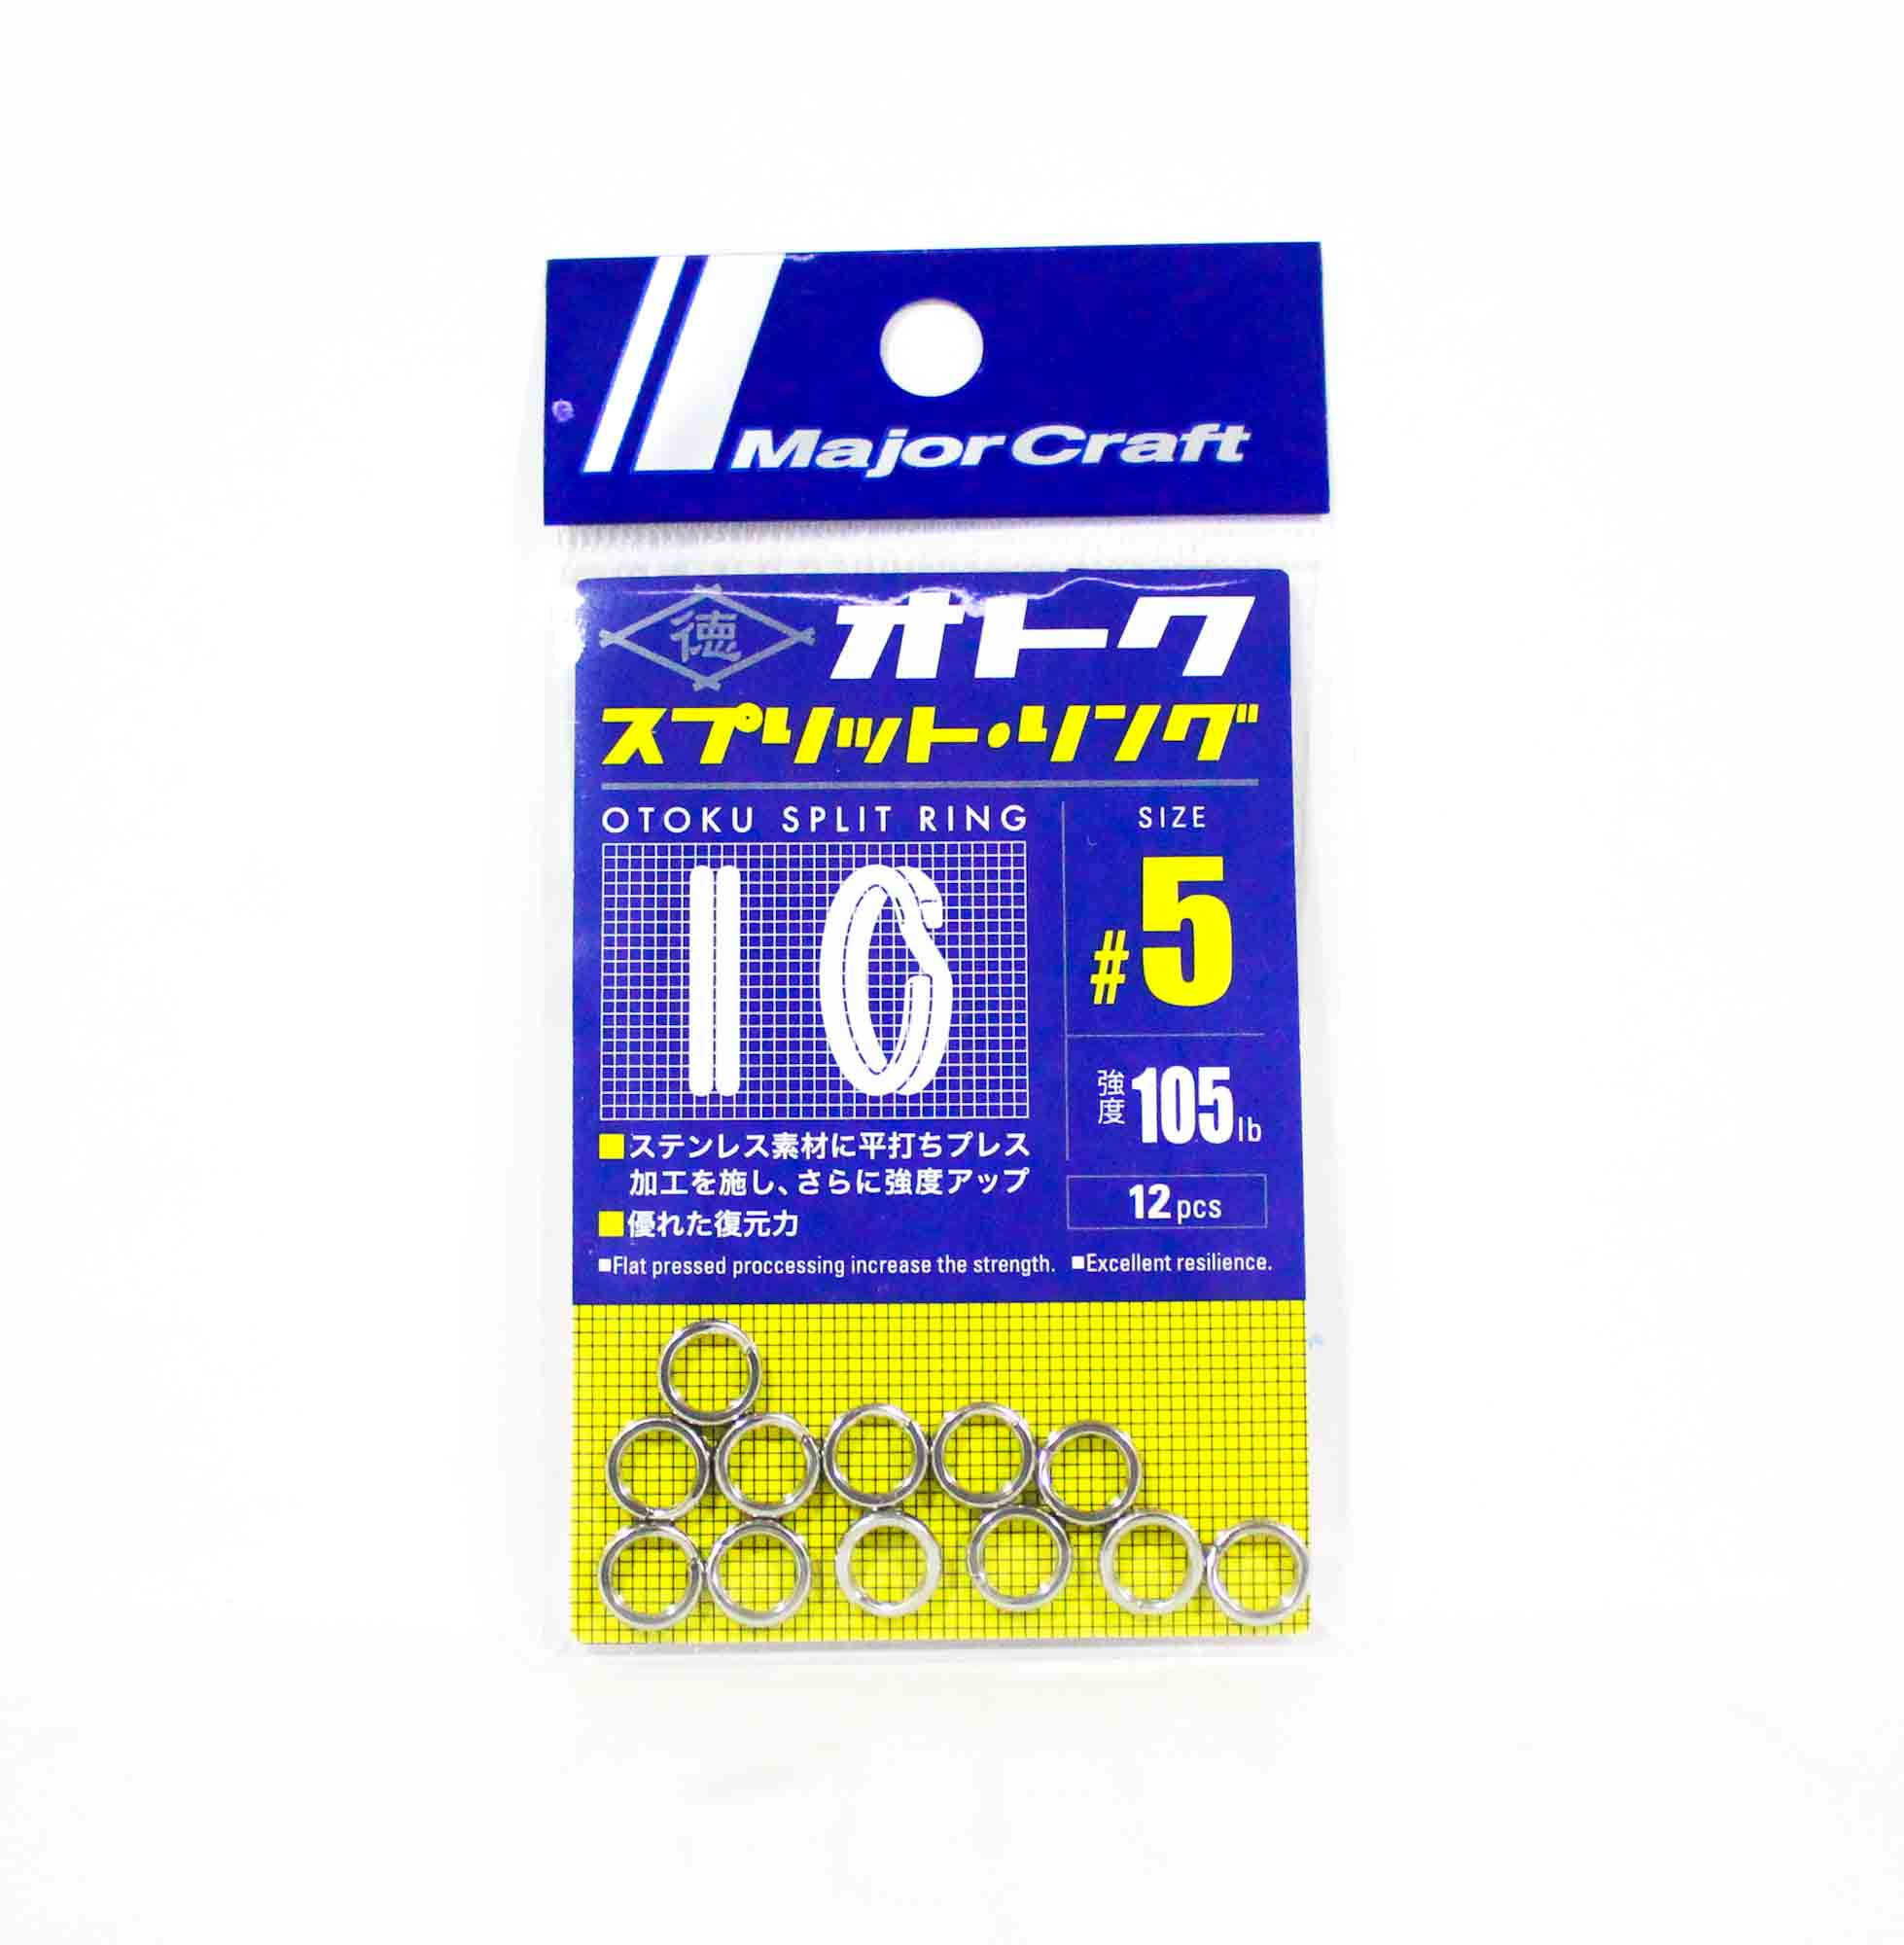 Major Craft Otoku Split Rings Size 5 (2882)